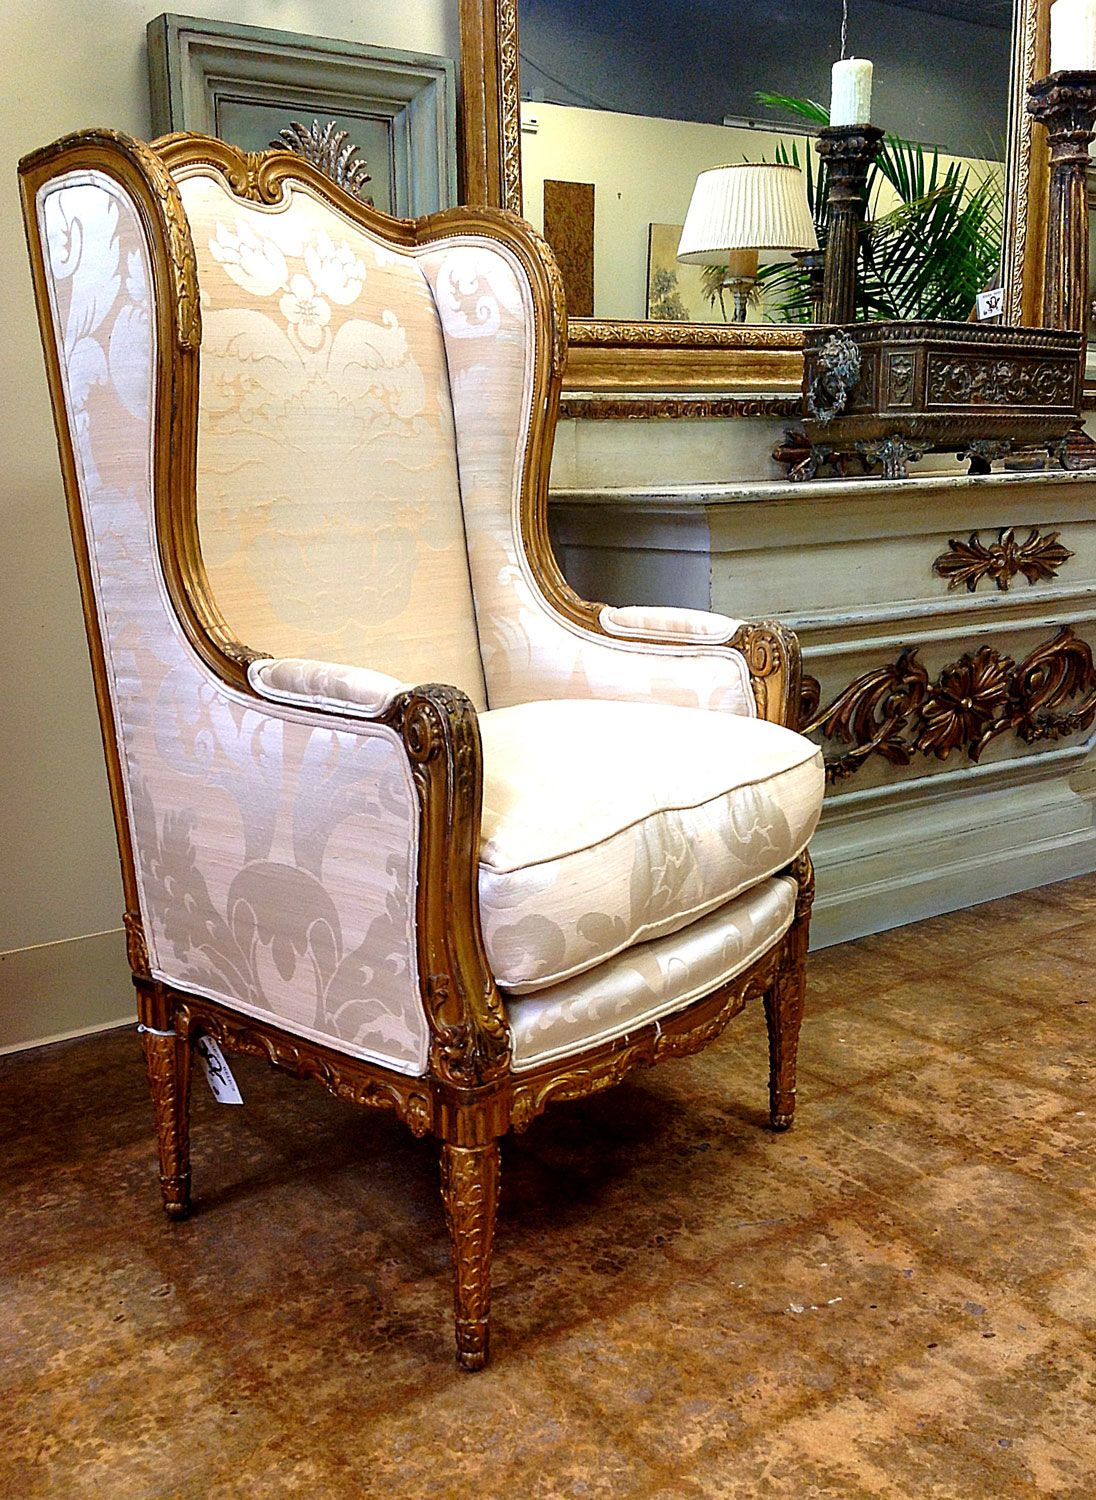 Furniture. Glamorous Antique Wingback Chair Design Inspiration with Gilt  Wood Trim and Cream Silk Damask Fabric for Chic Living Room. - Furniture. Glamorous Antique Wingback Chair Design Inspiration With